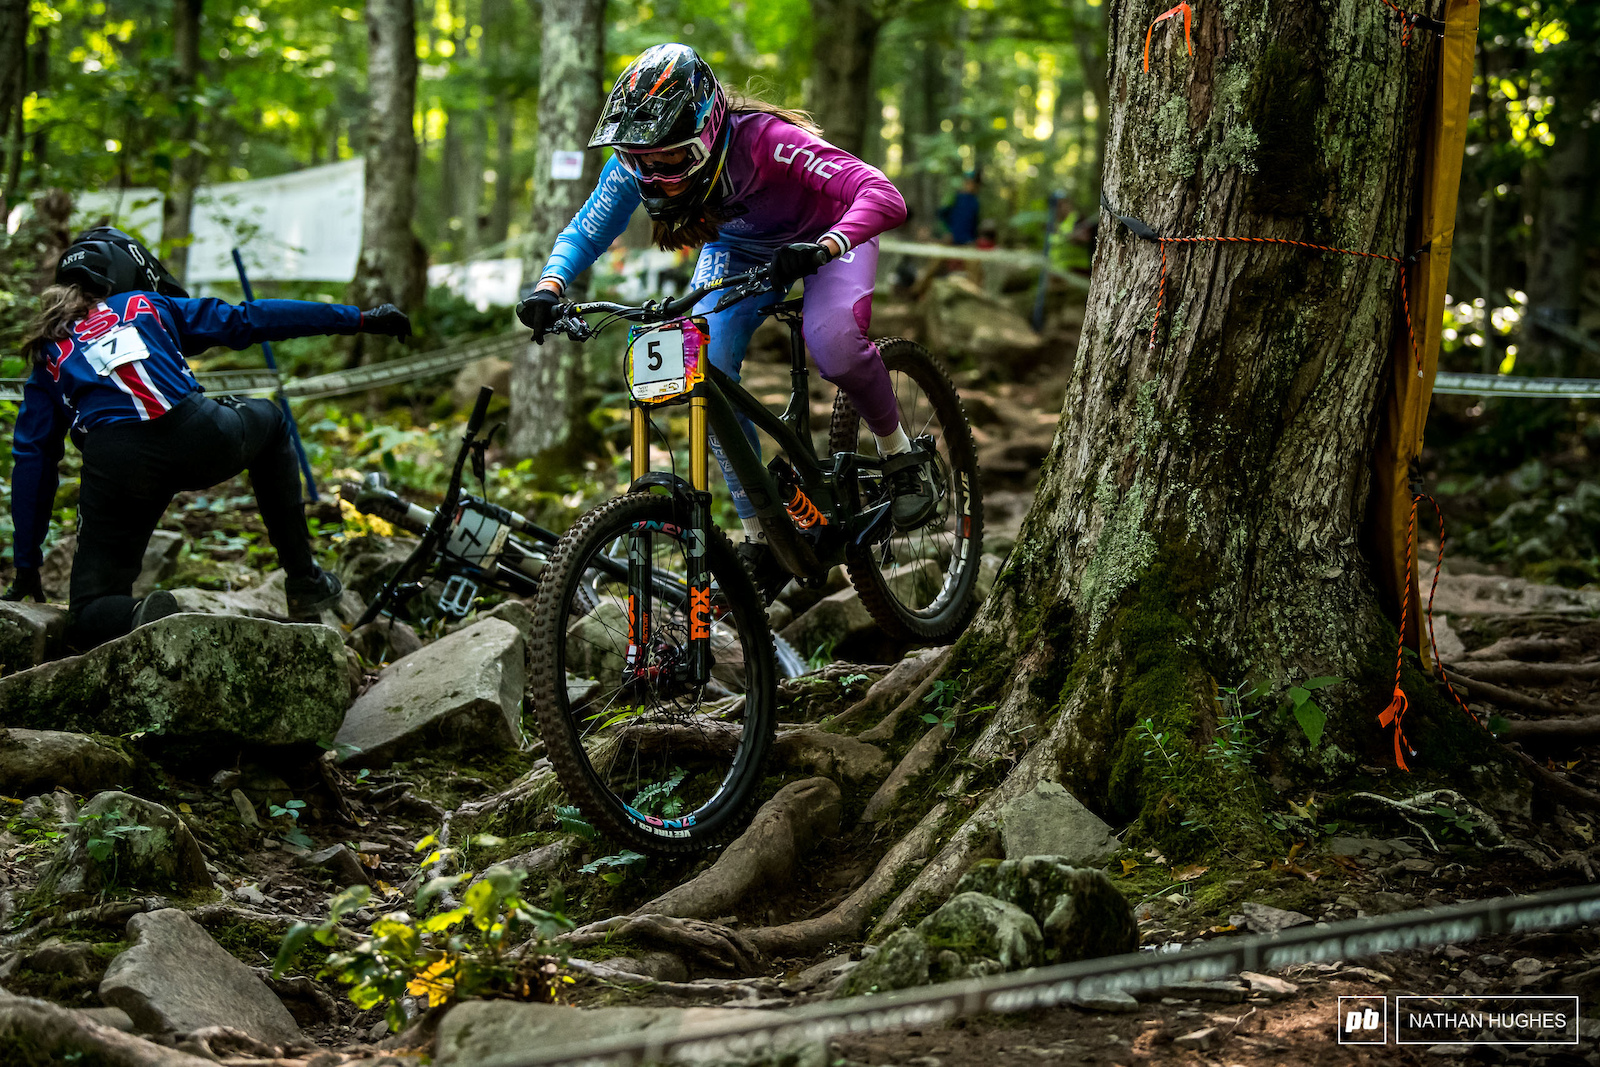 Siel Van der Velden with a tactical overtake on her way to 2nd place junior.